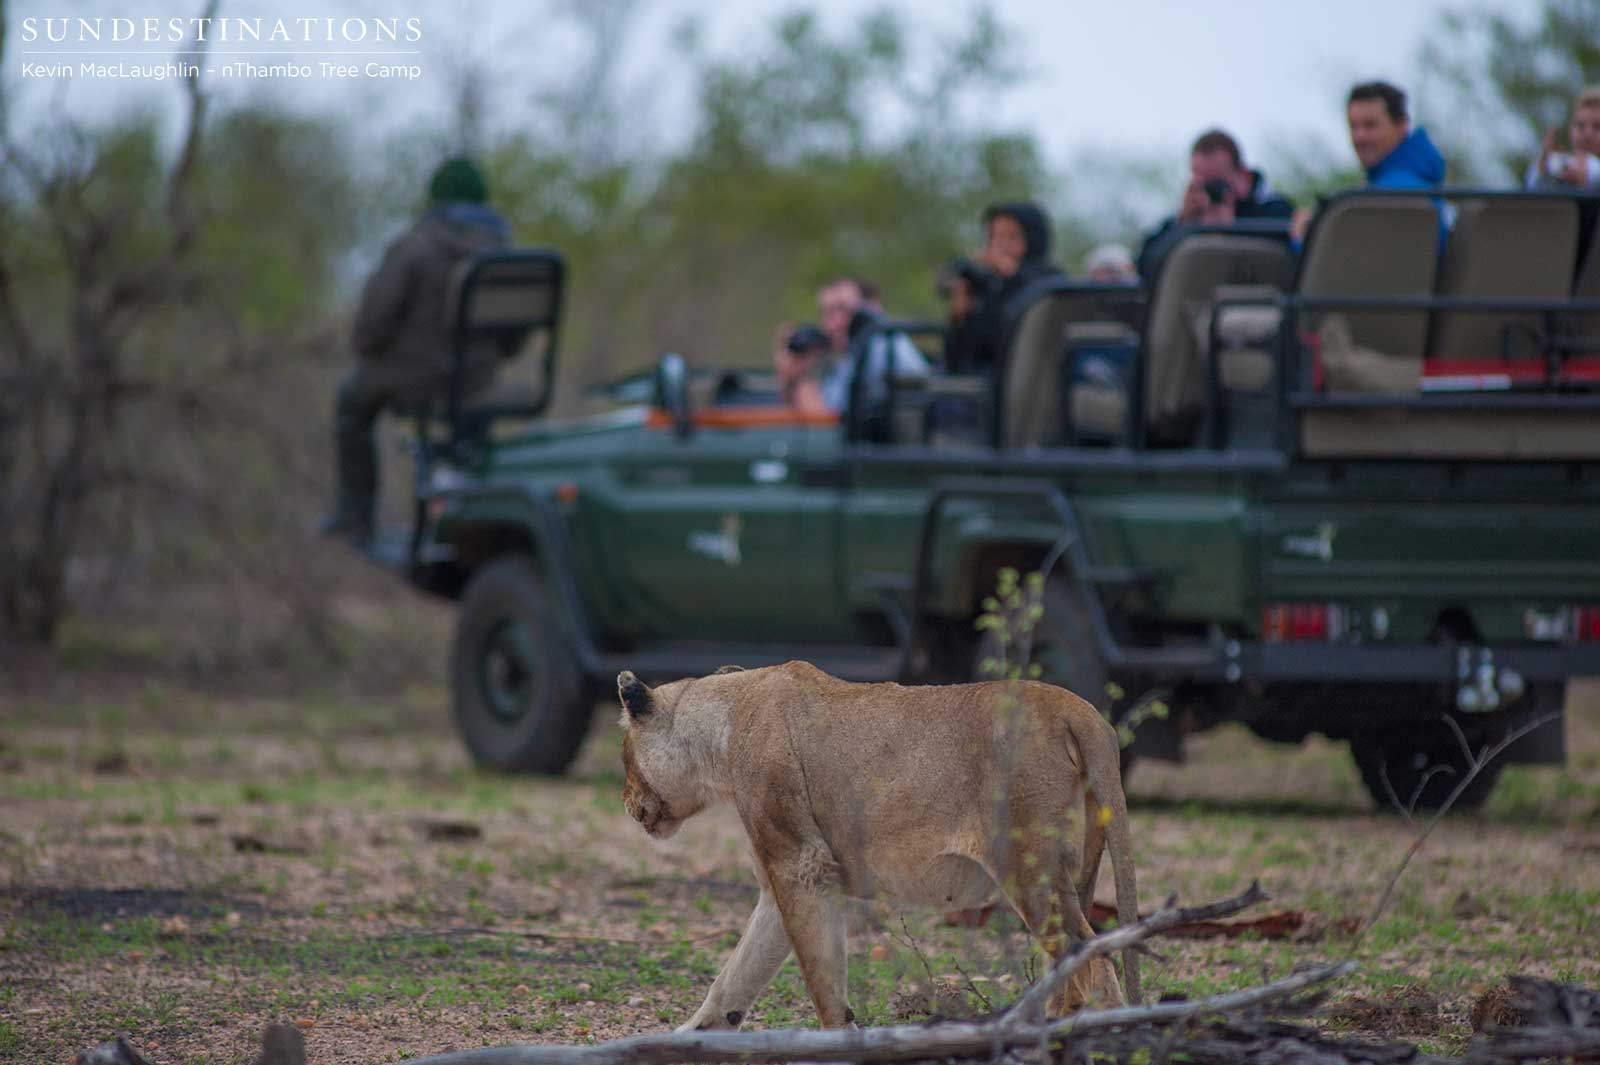 nThambo's Predator Safari with Lions and Wild Dogs!